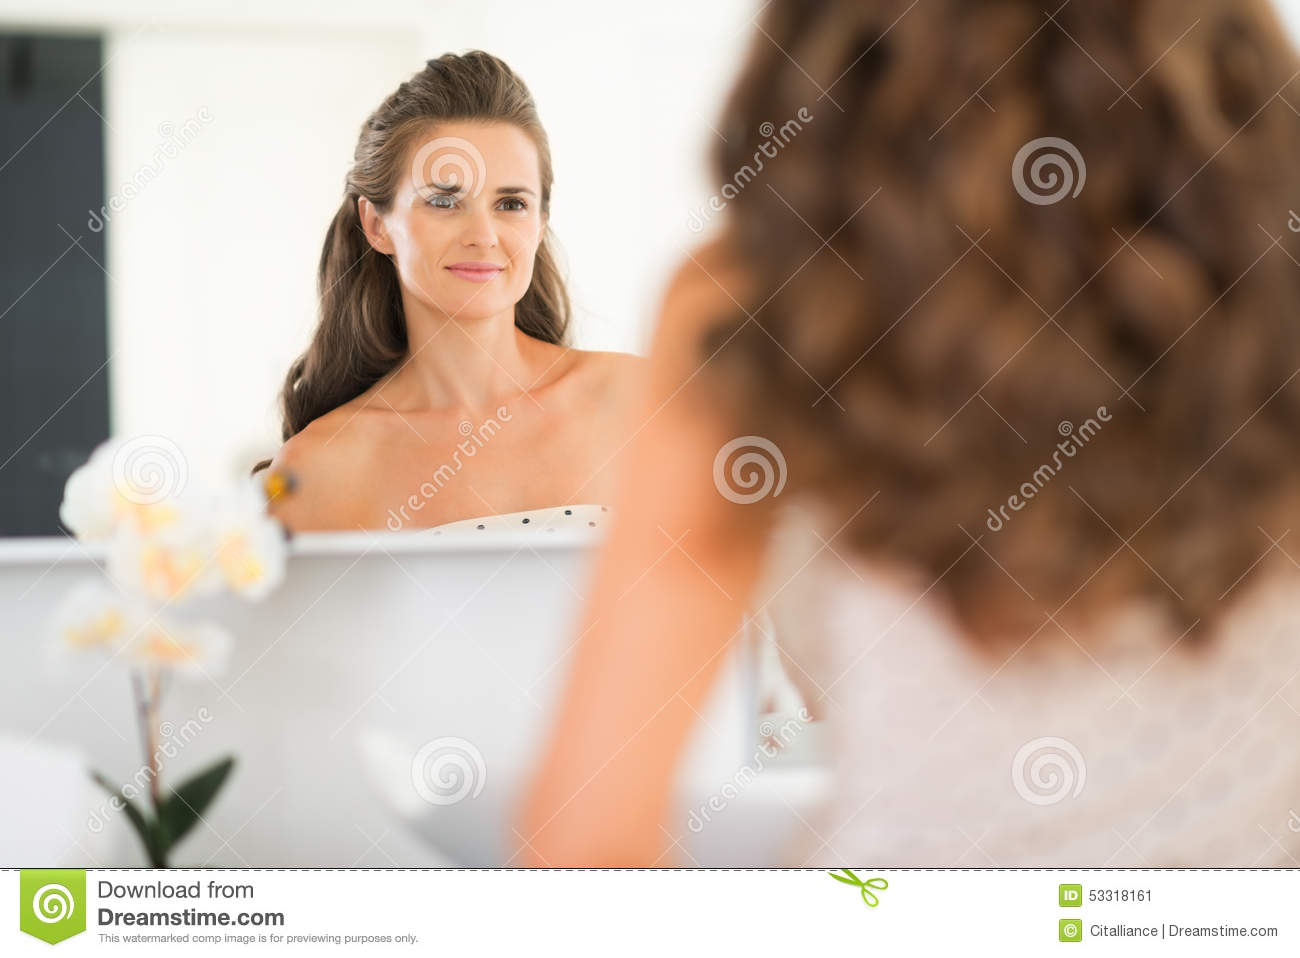 Young woman looking in mirror in bathroom